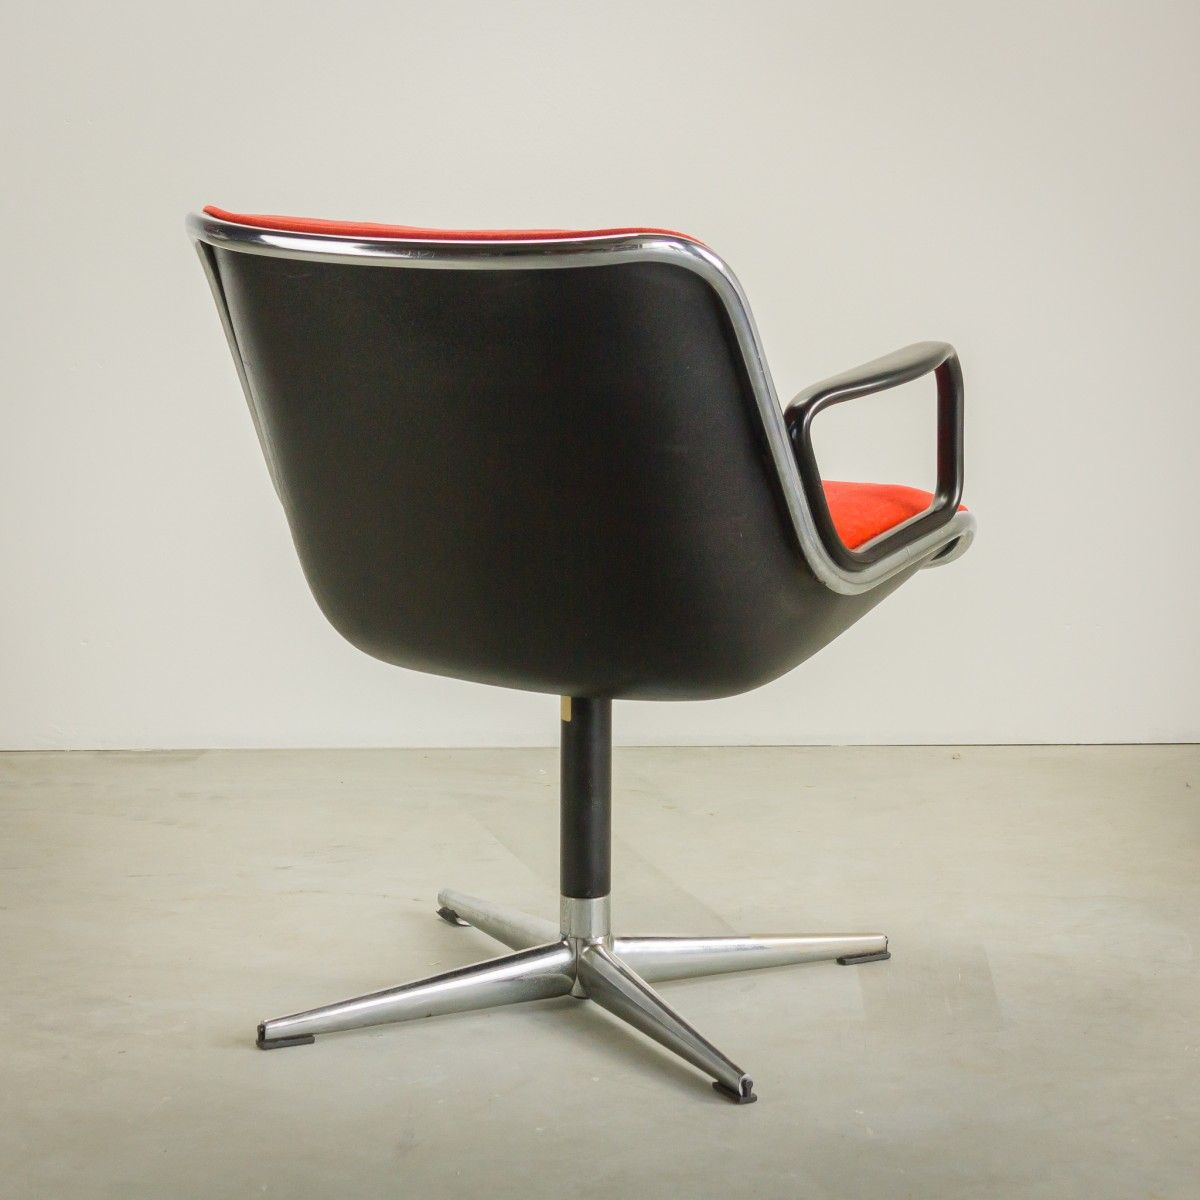 Groovy Red Velvet Executive Chair By Charles Pollock For Knoll Theyellowbook Wood Chair Design Ideas Theyellowbookinfo